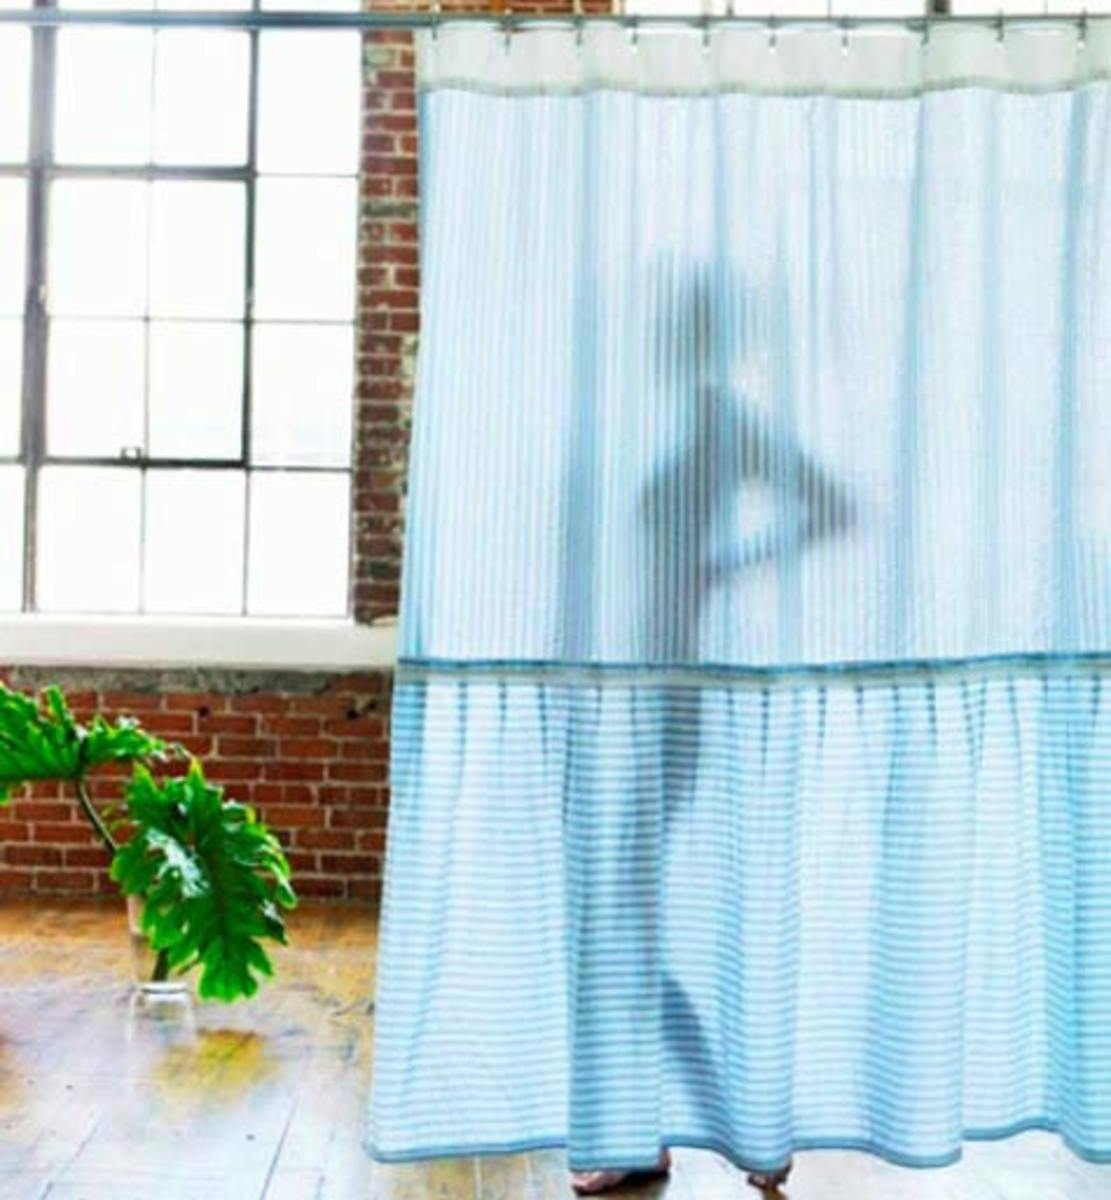 12 Flirty Fun Sexy Pretty Shower Curtains To Spice Up